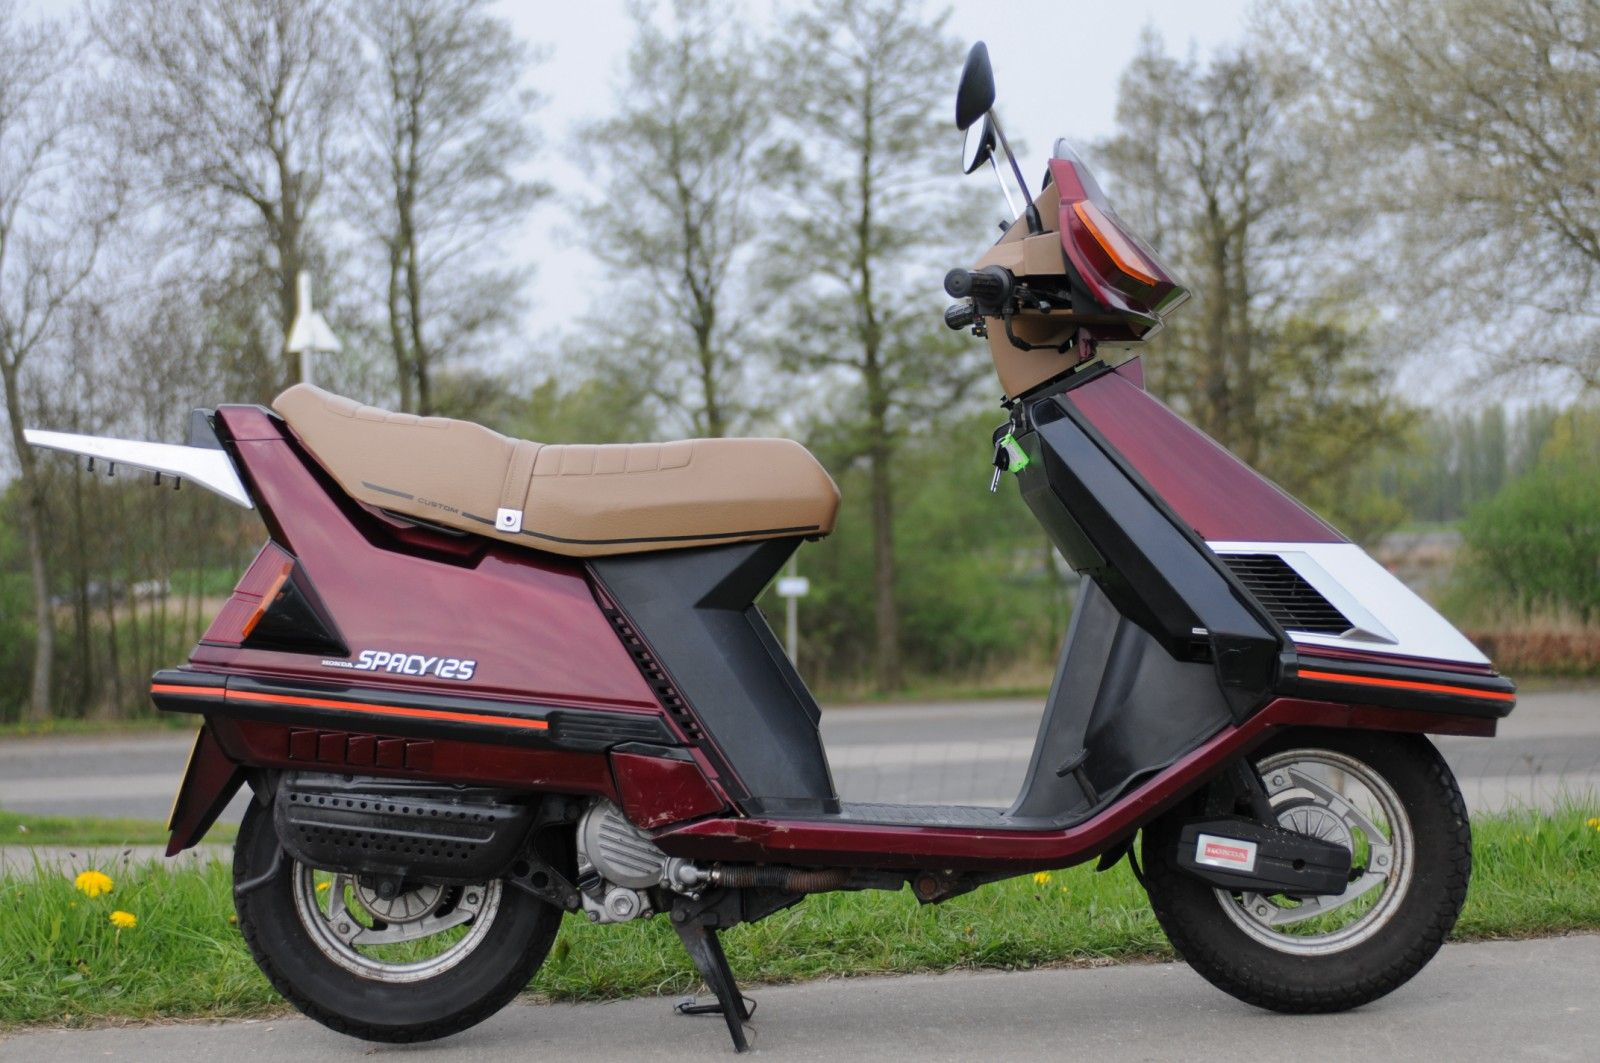 honda spacy 125 skutery pinterest honda scooters. Black Bedroom Furniture Sets. Home Design Ideas